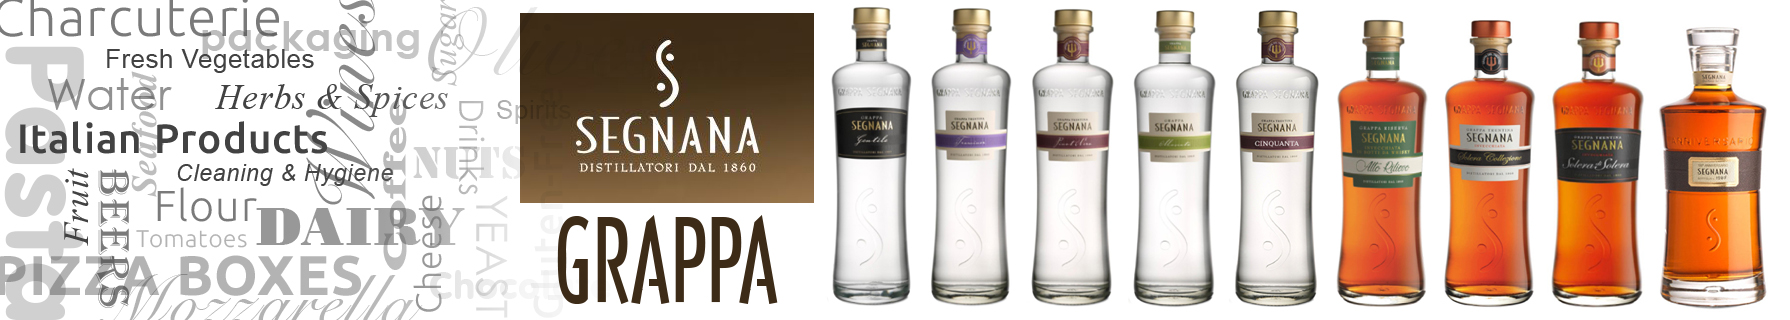 Shop for Segnana Grappa Range